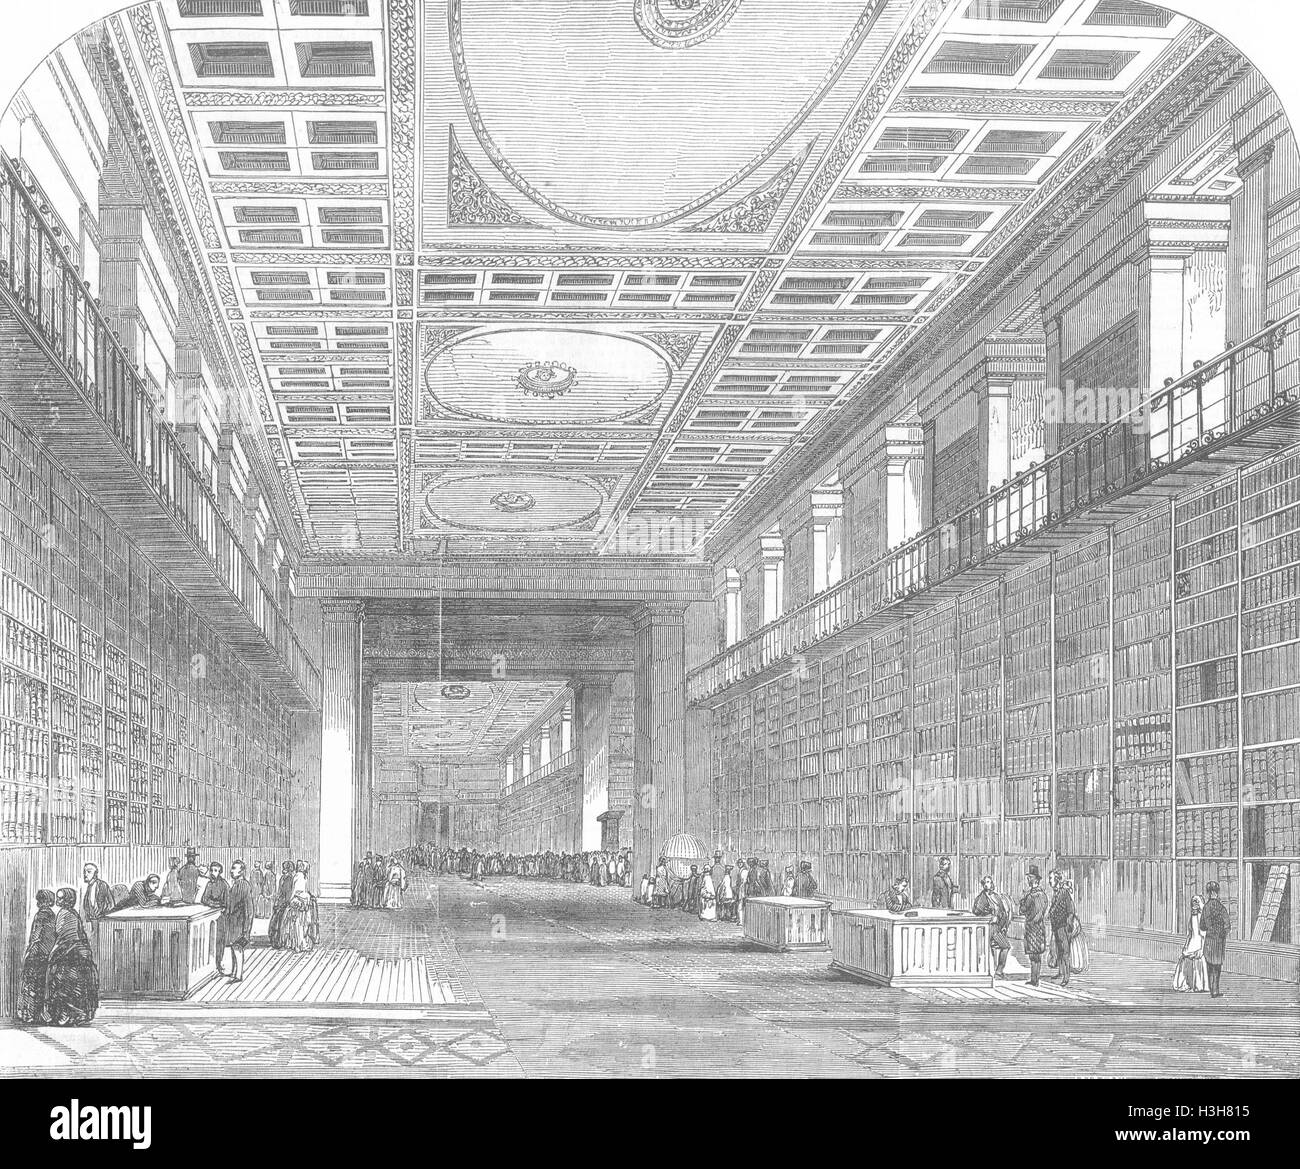 LONDON British Museum-Royal or King's Library 1851. Illustrated London News - Stock Image